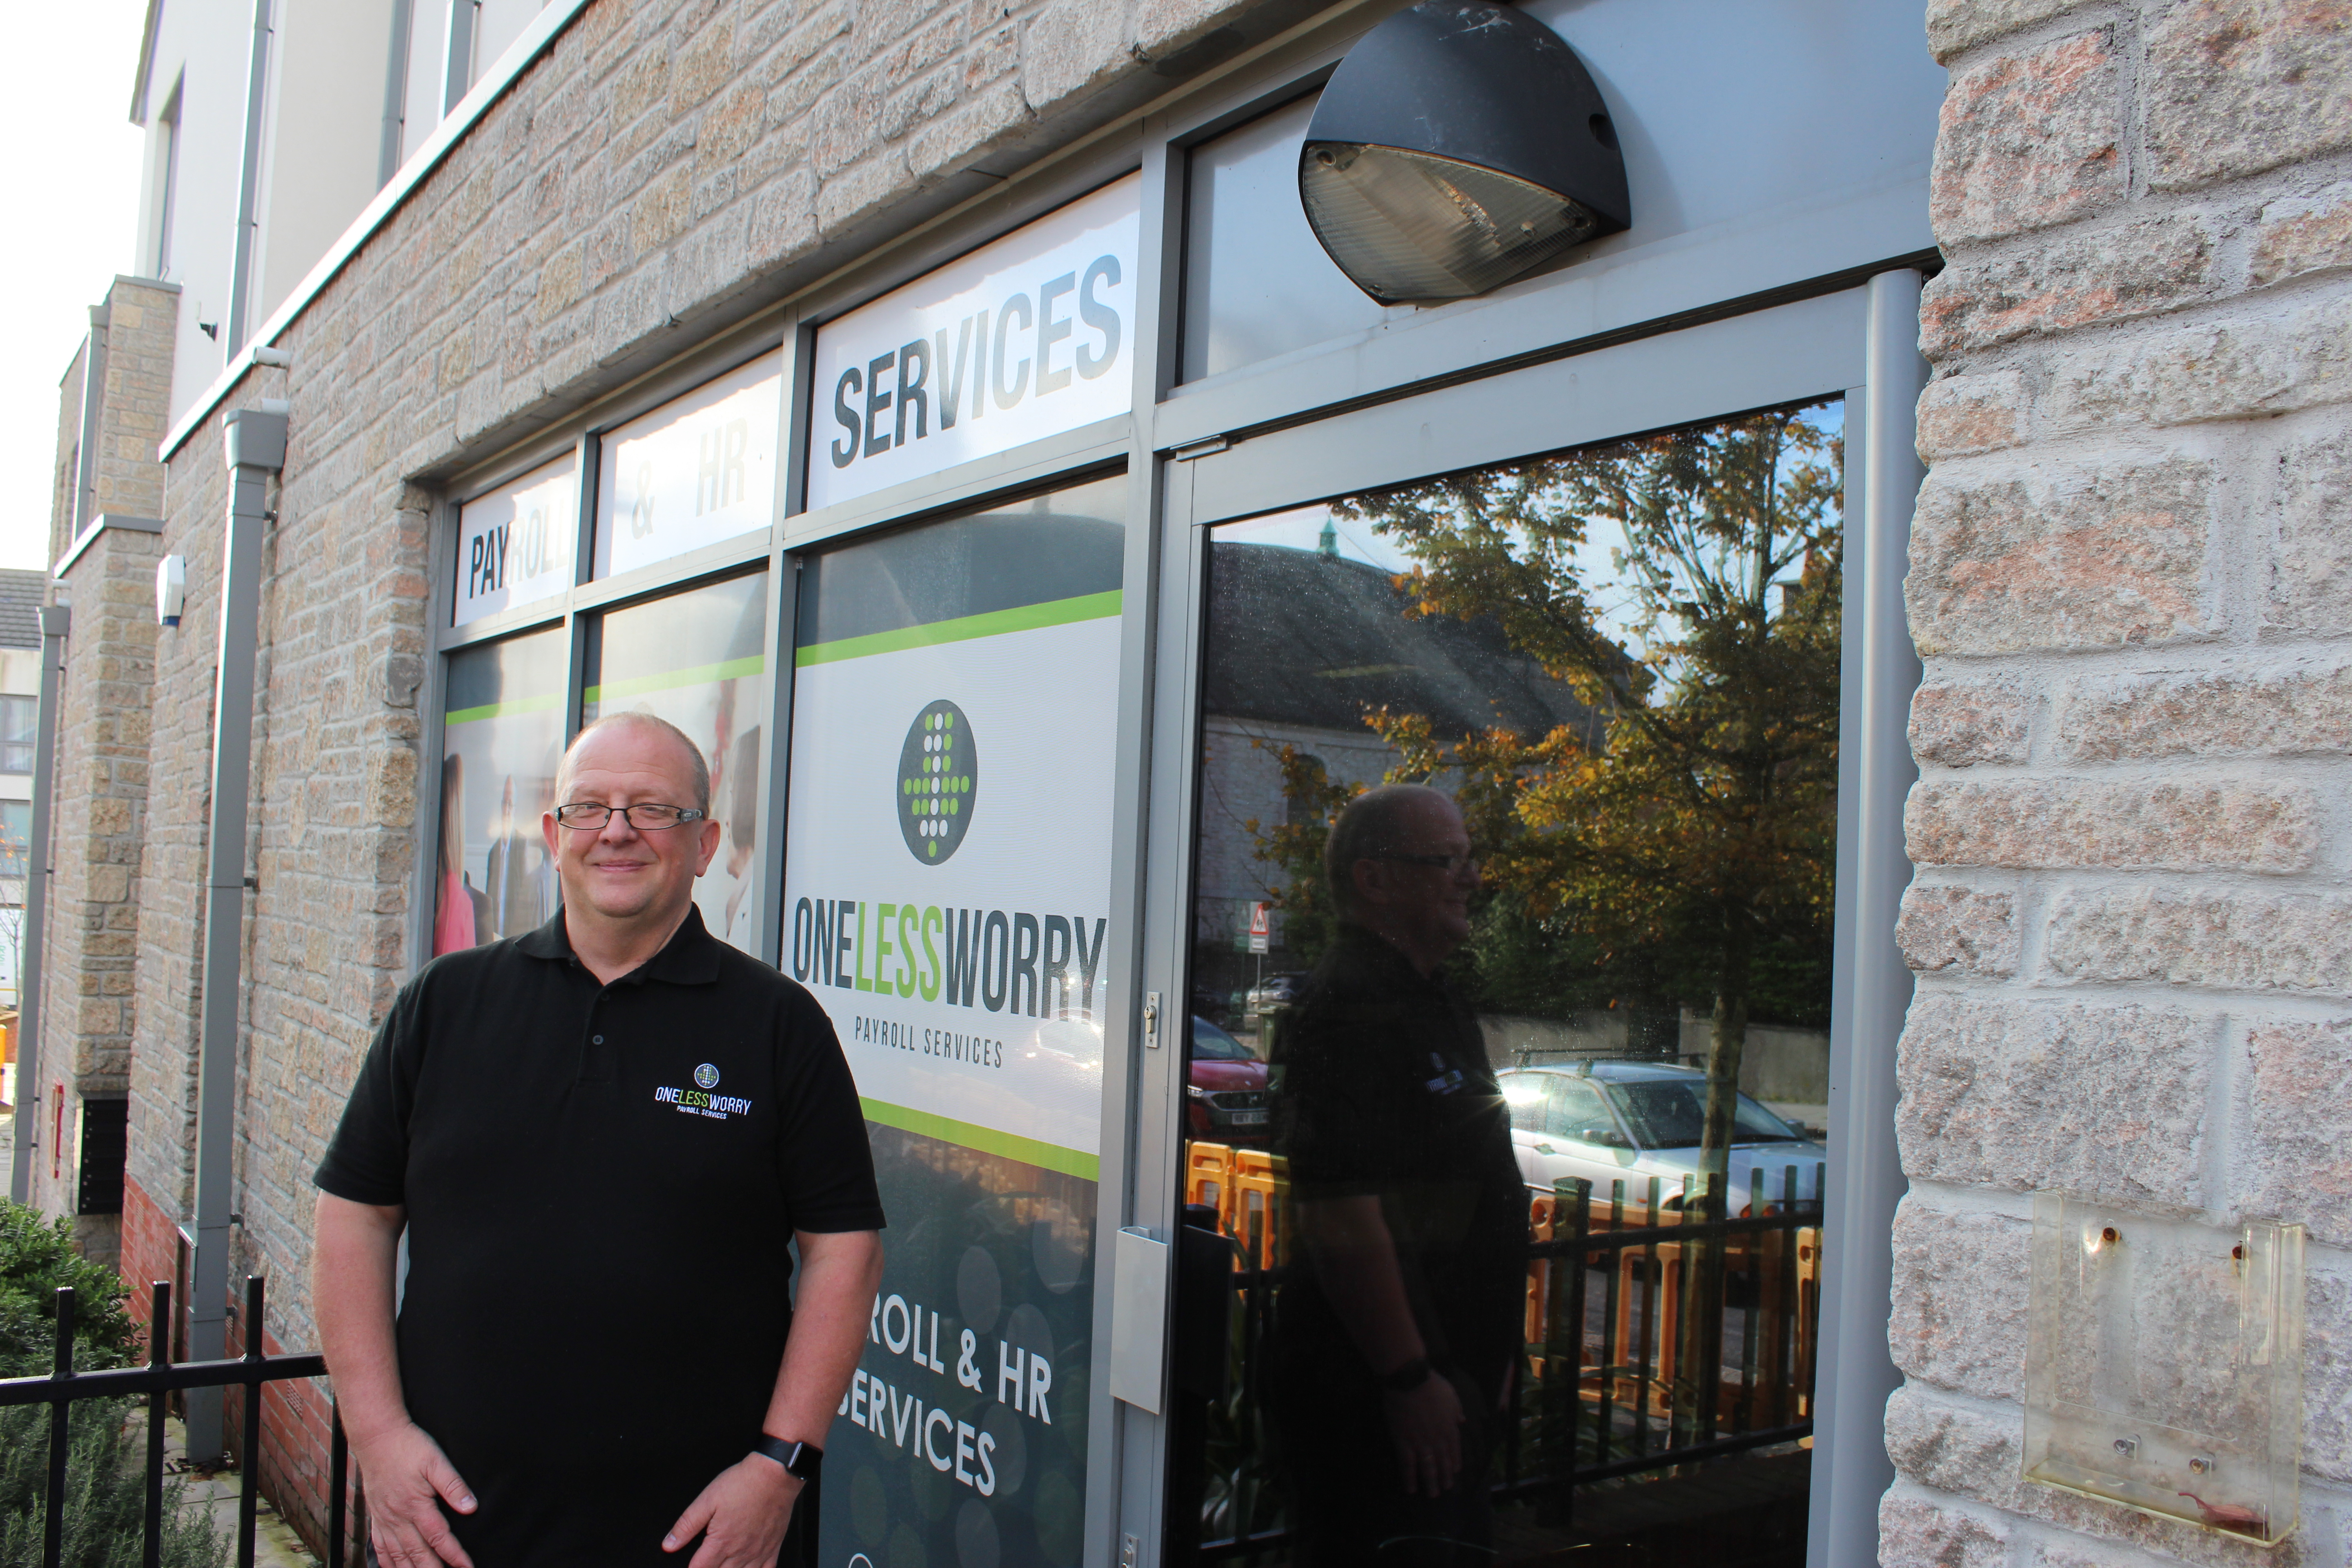 James Toulson, owner of One Less Worry, standing by his window films